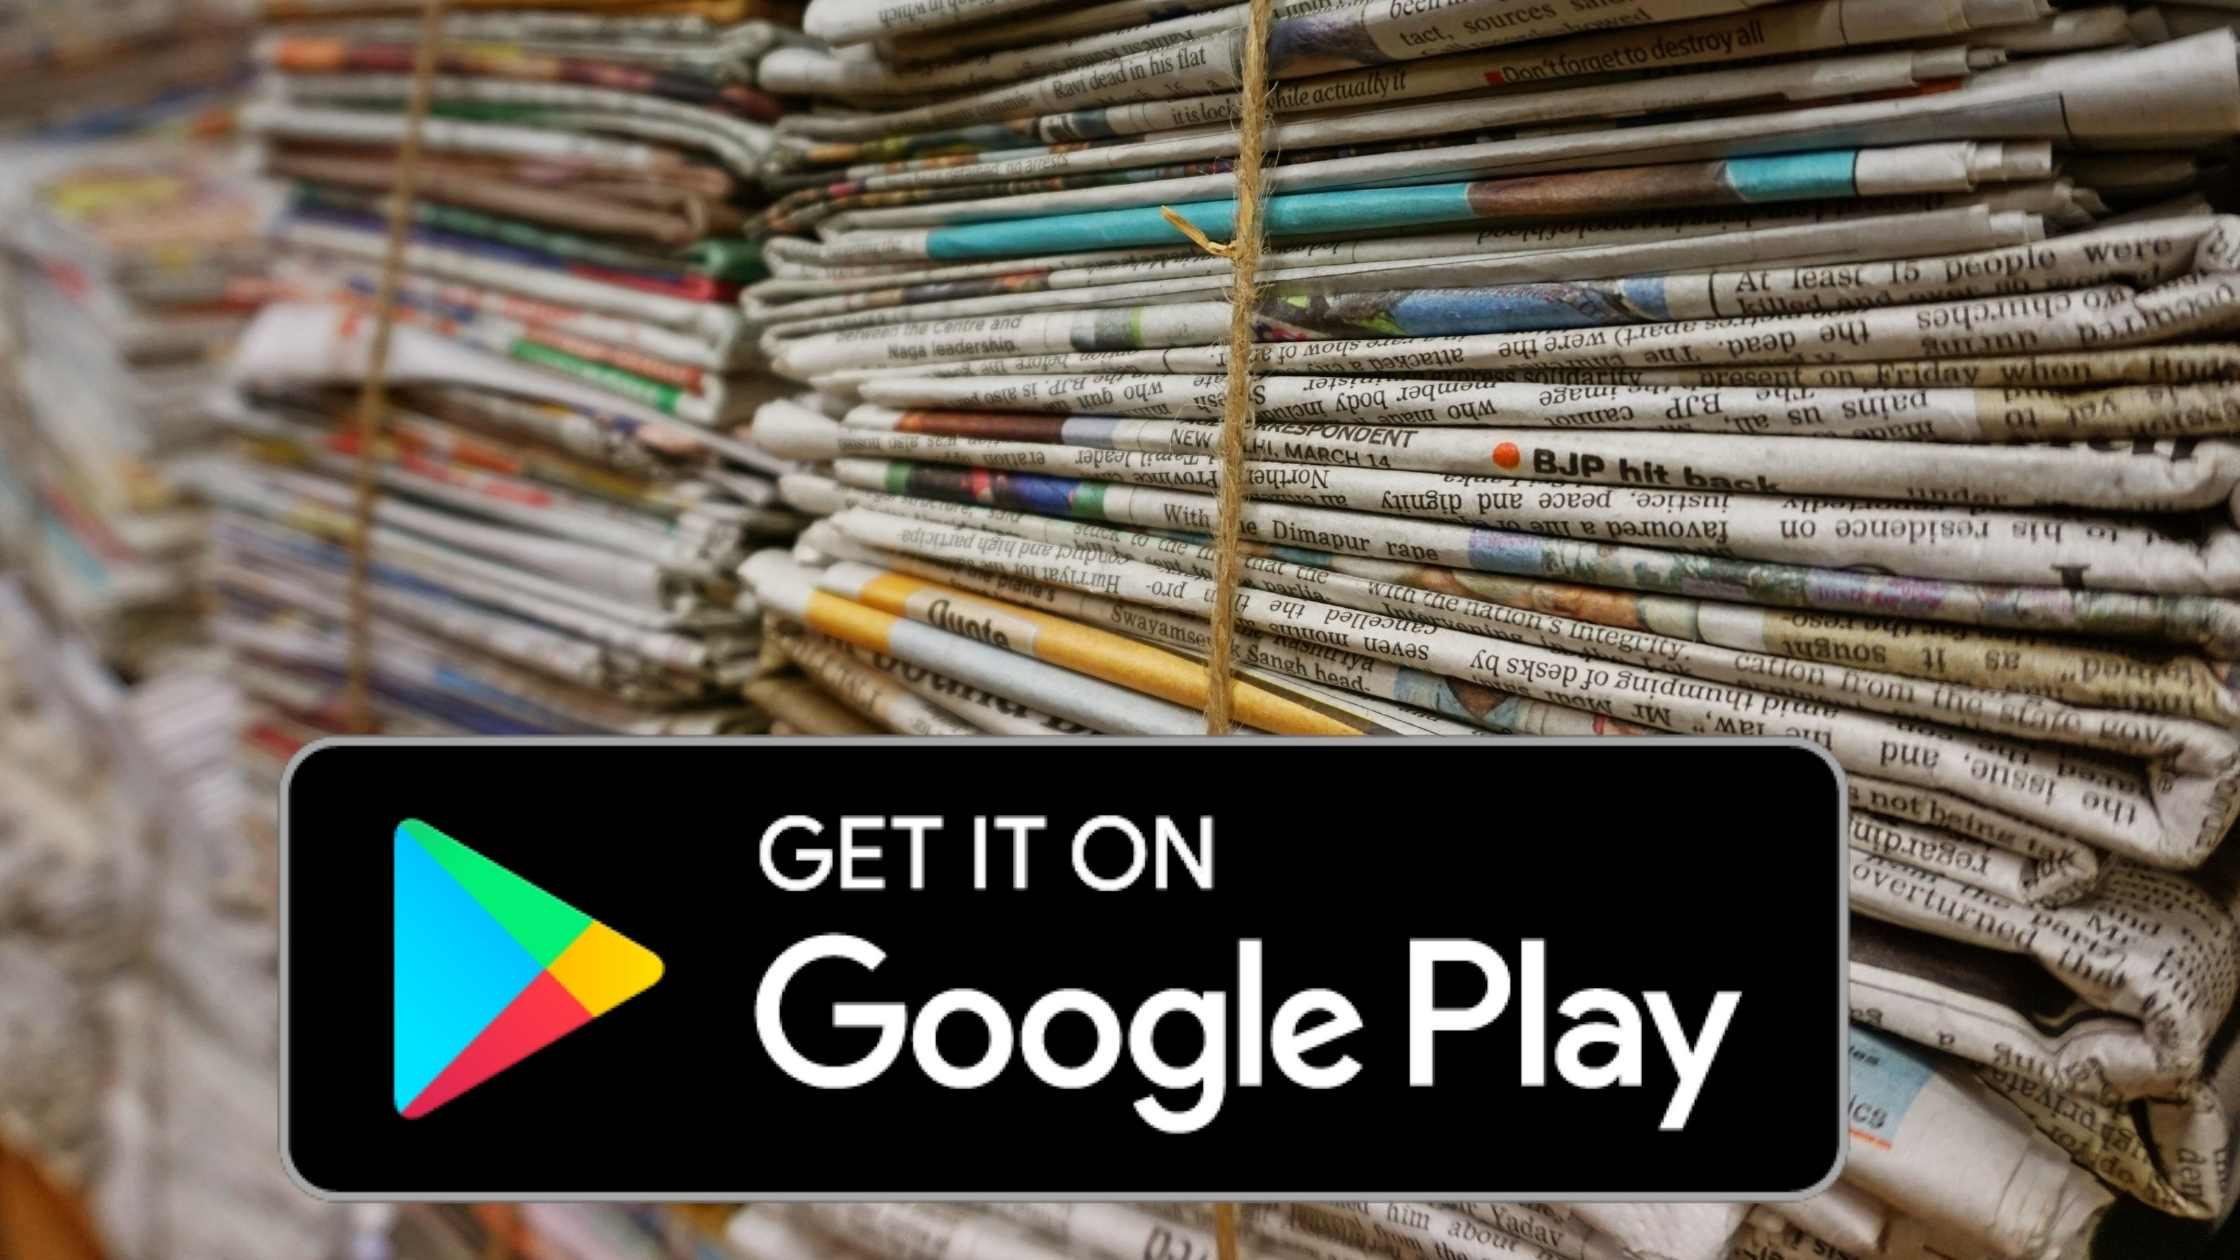 App bundle concept; photo of stacks of bundled newspapers and Get it on Google Play button icon